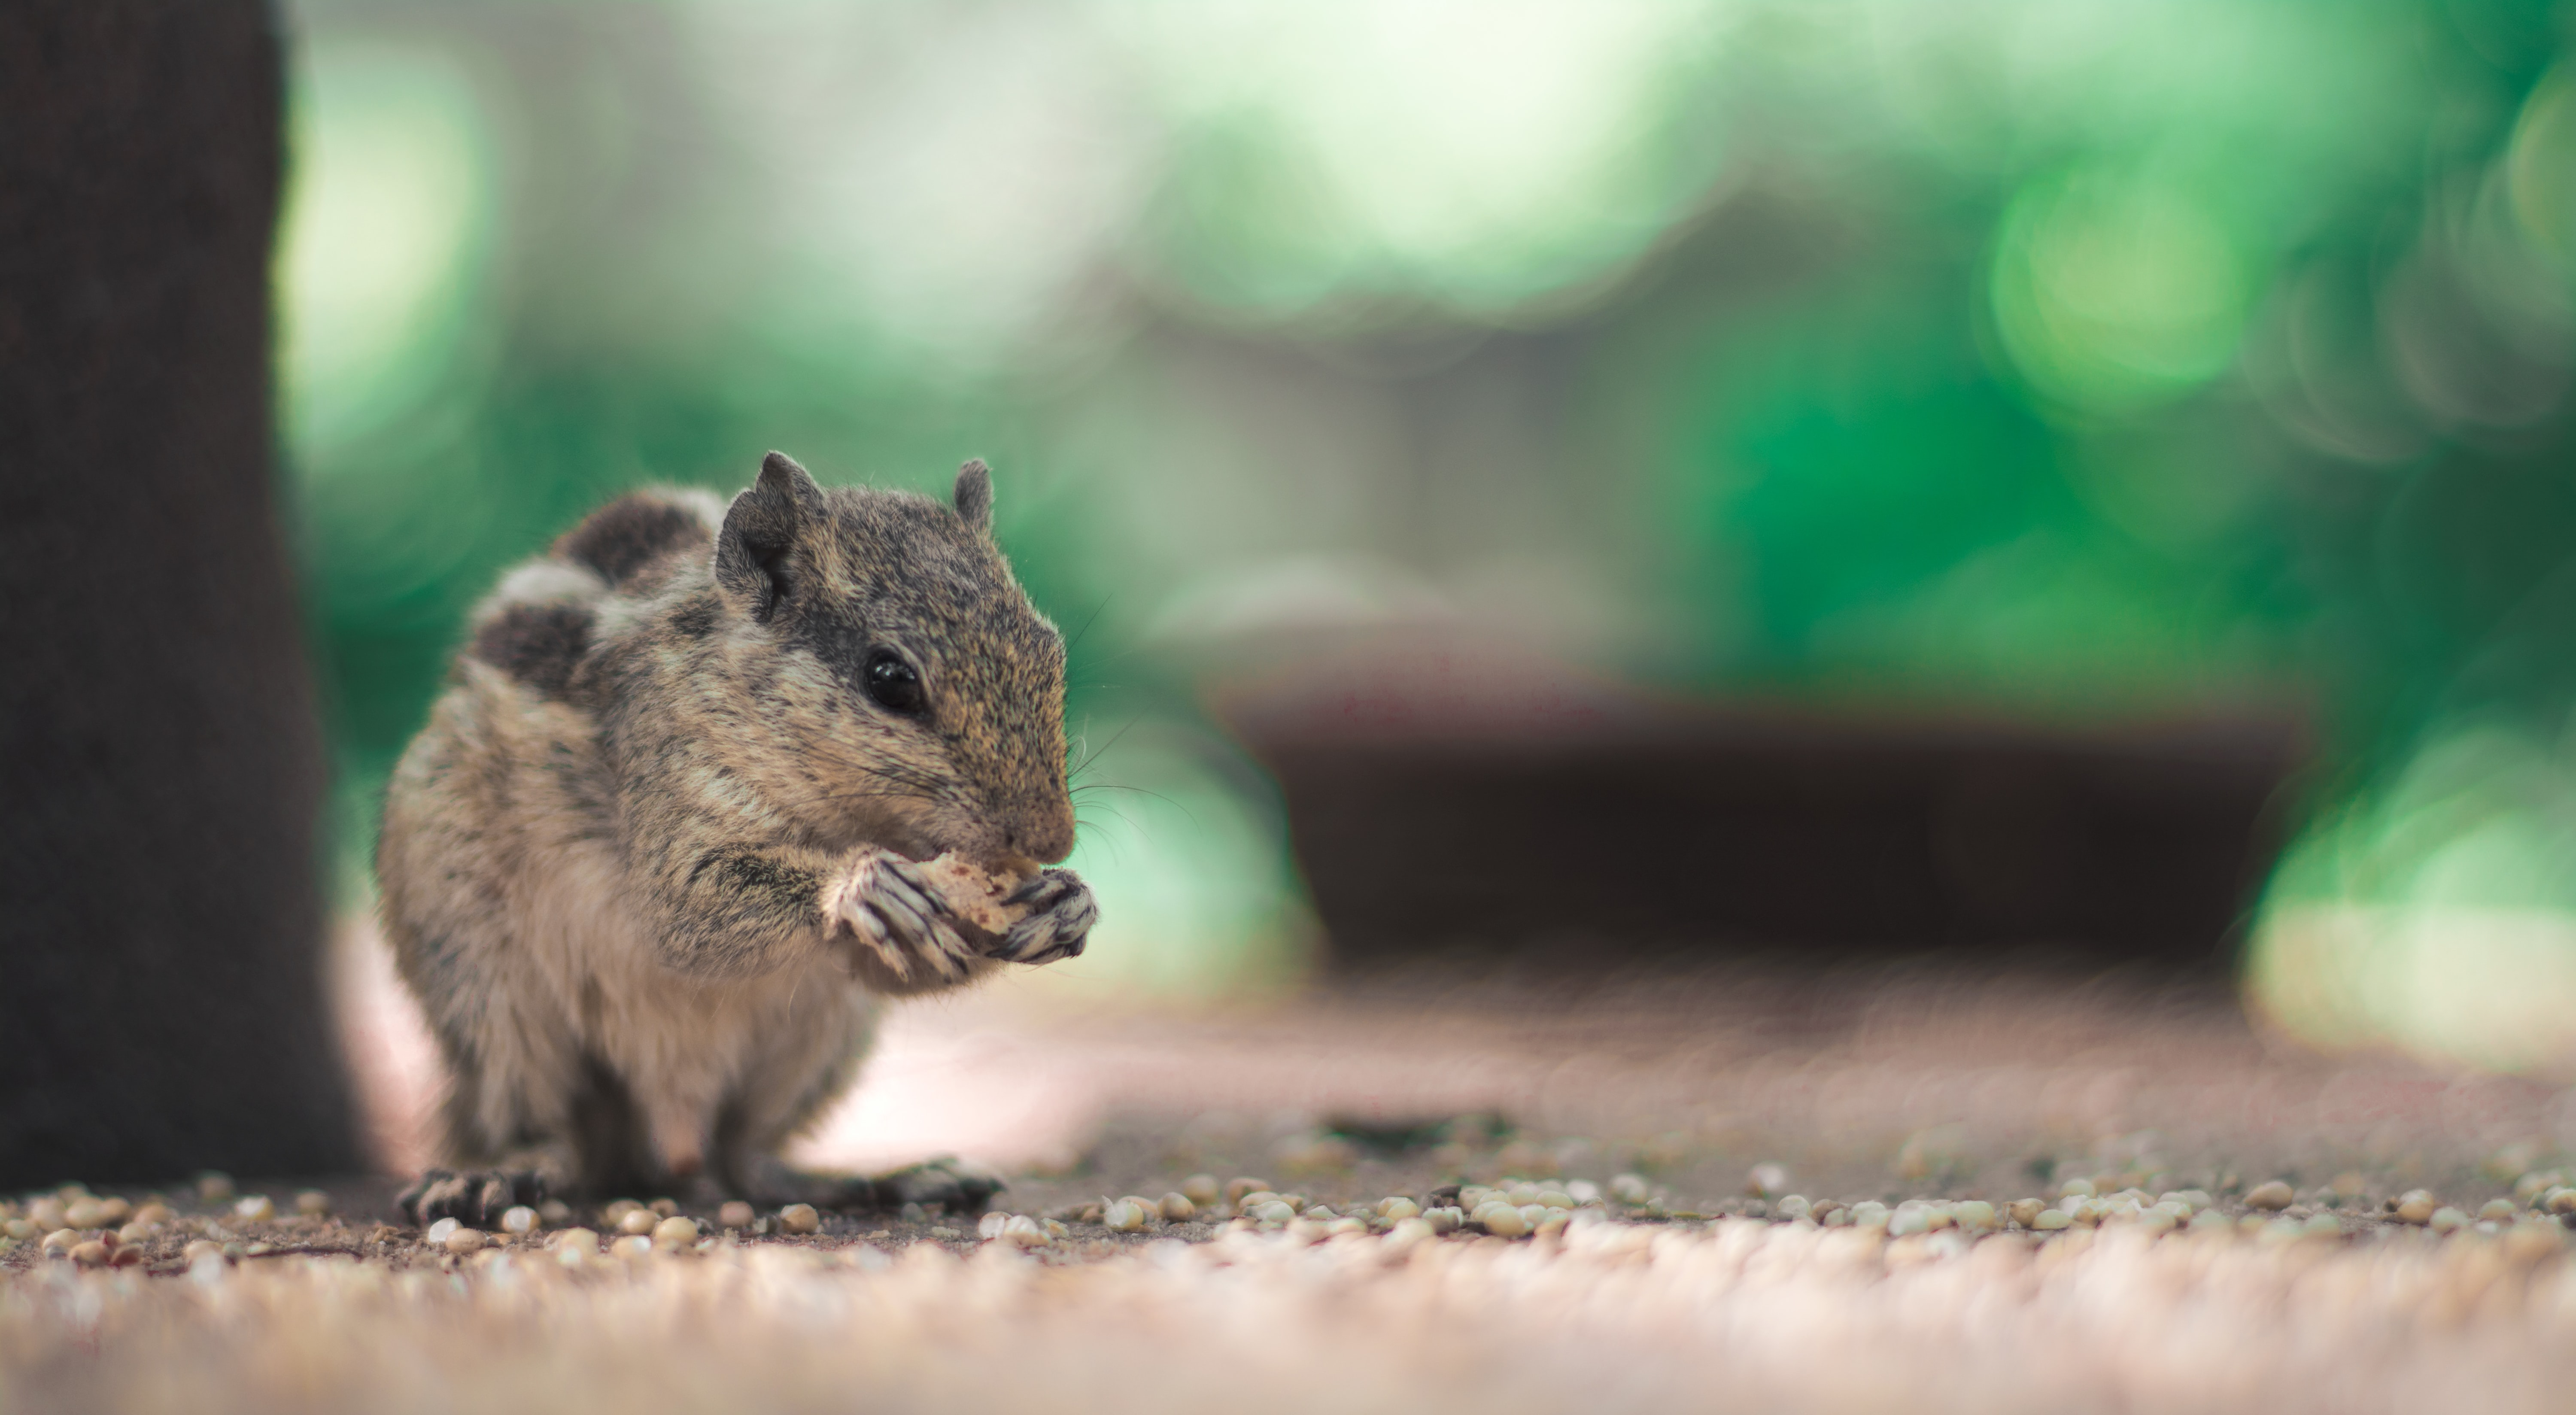 shallow focus photography of eating squirrel